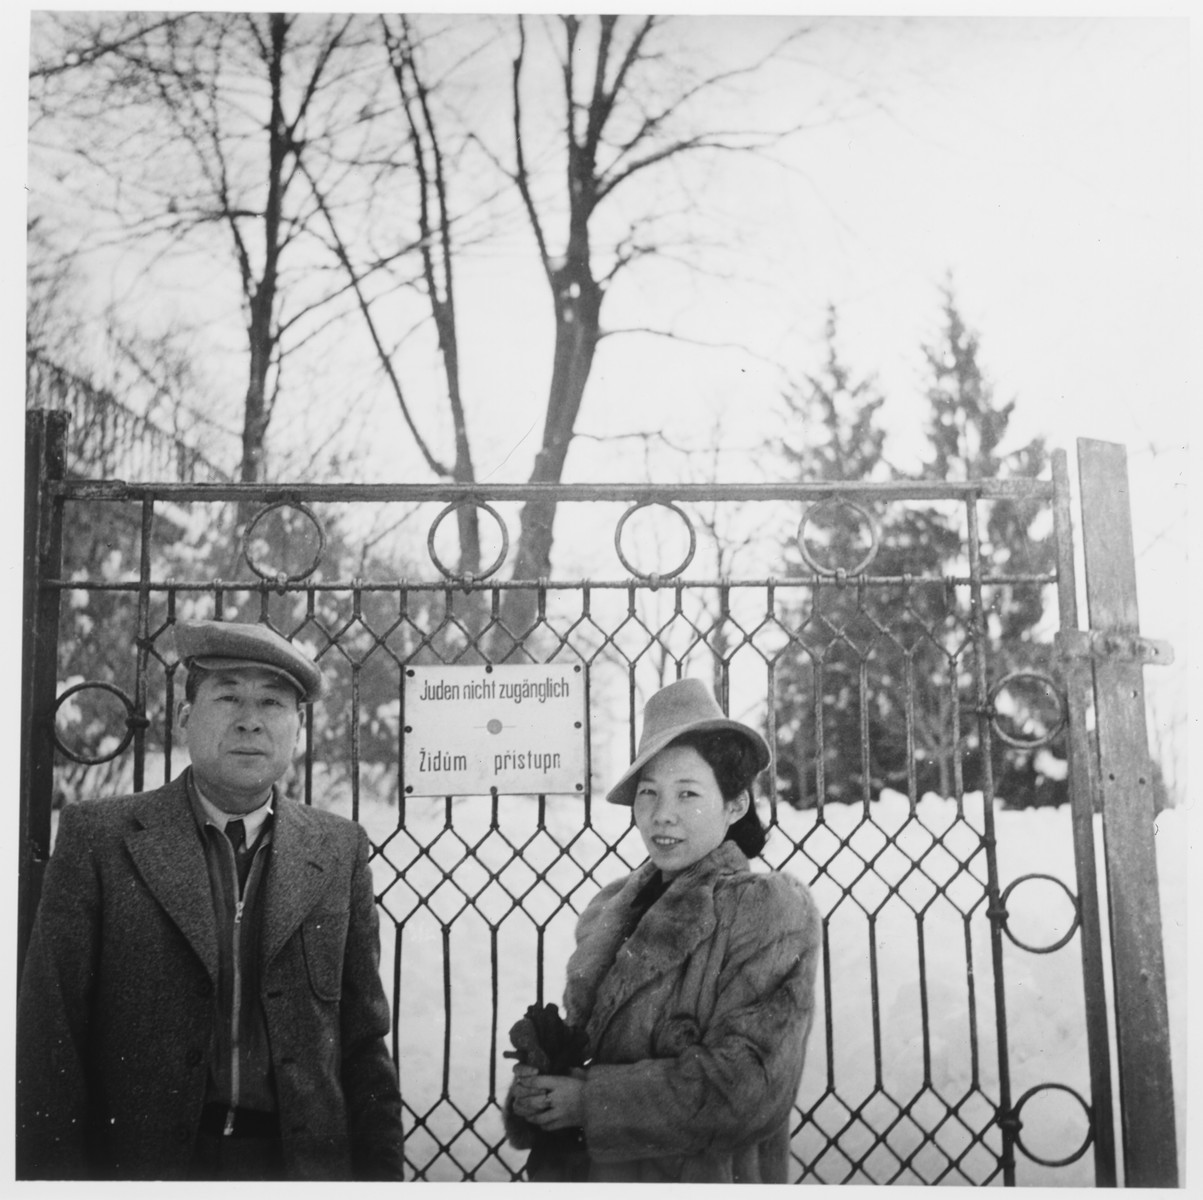 """Chiune Sugihara and his wife Yukiko pose in front of the gate to a park in Prague.  The posted sign  reads, """"Jews not allowed"""" in German. However the lower line in Czech reads """"Jews Allowed"""". Someone as covered or scratched out the no in the Czech line."""